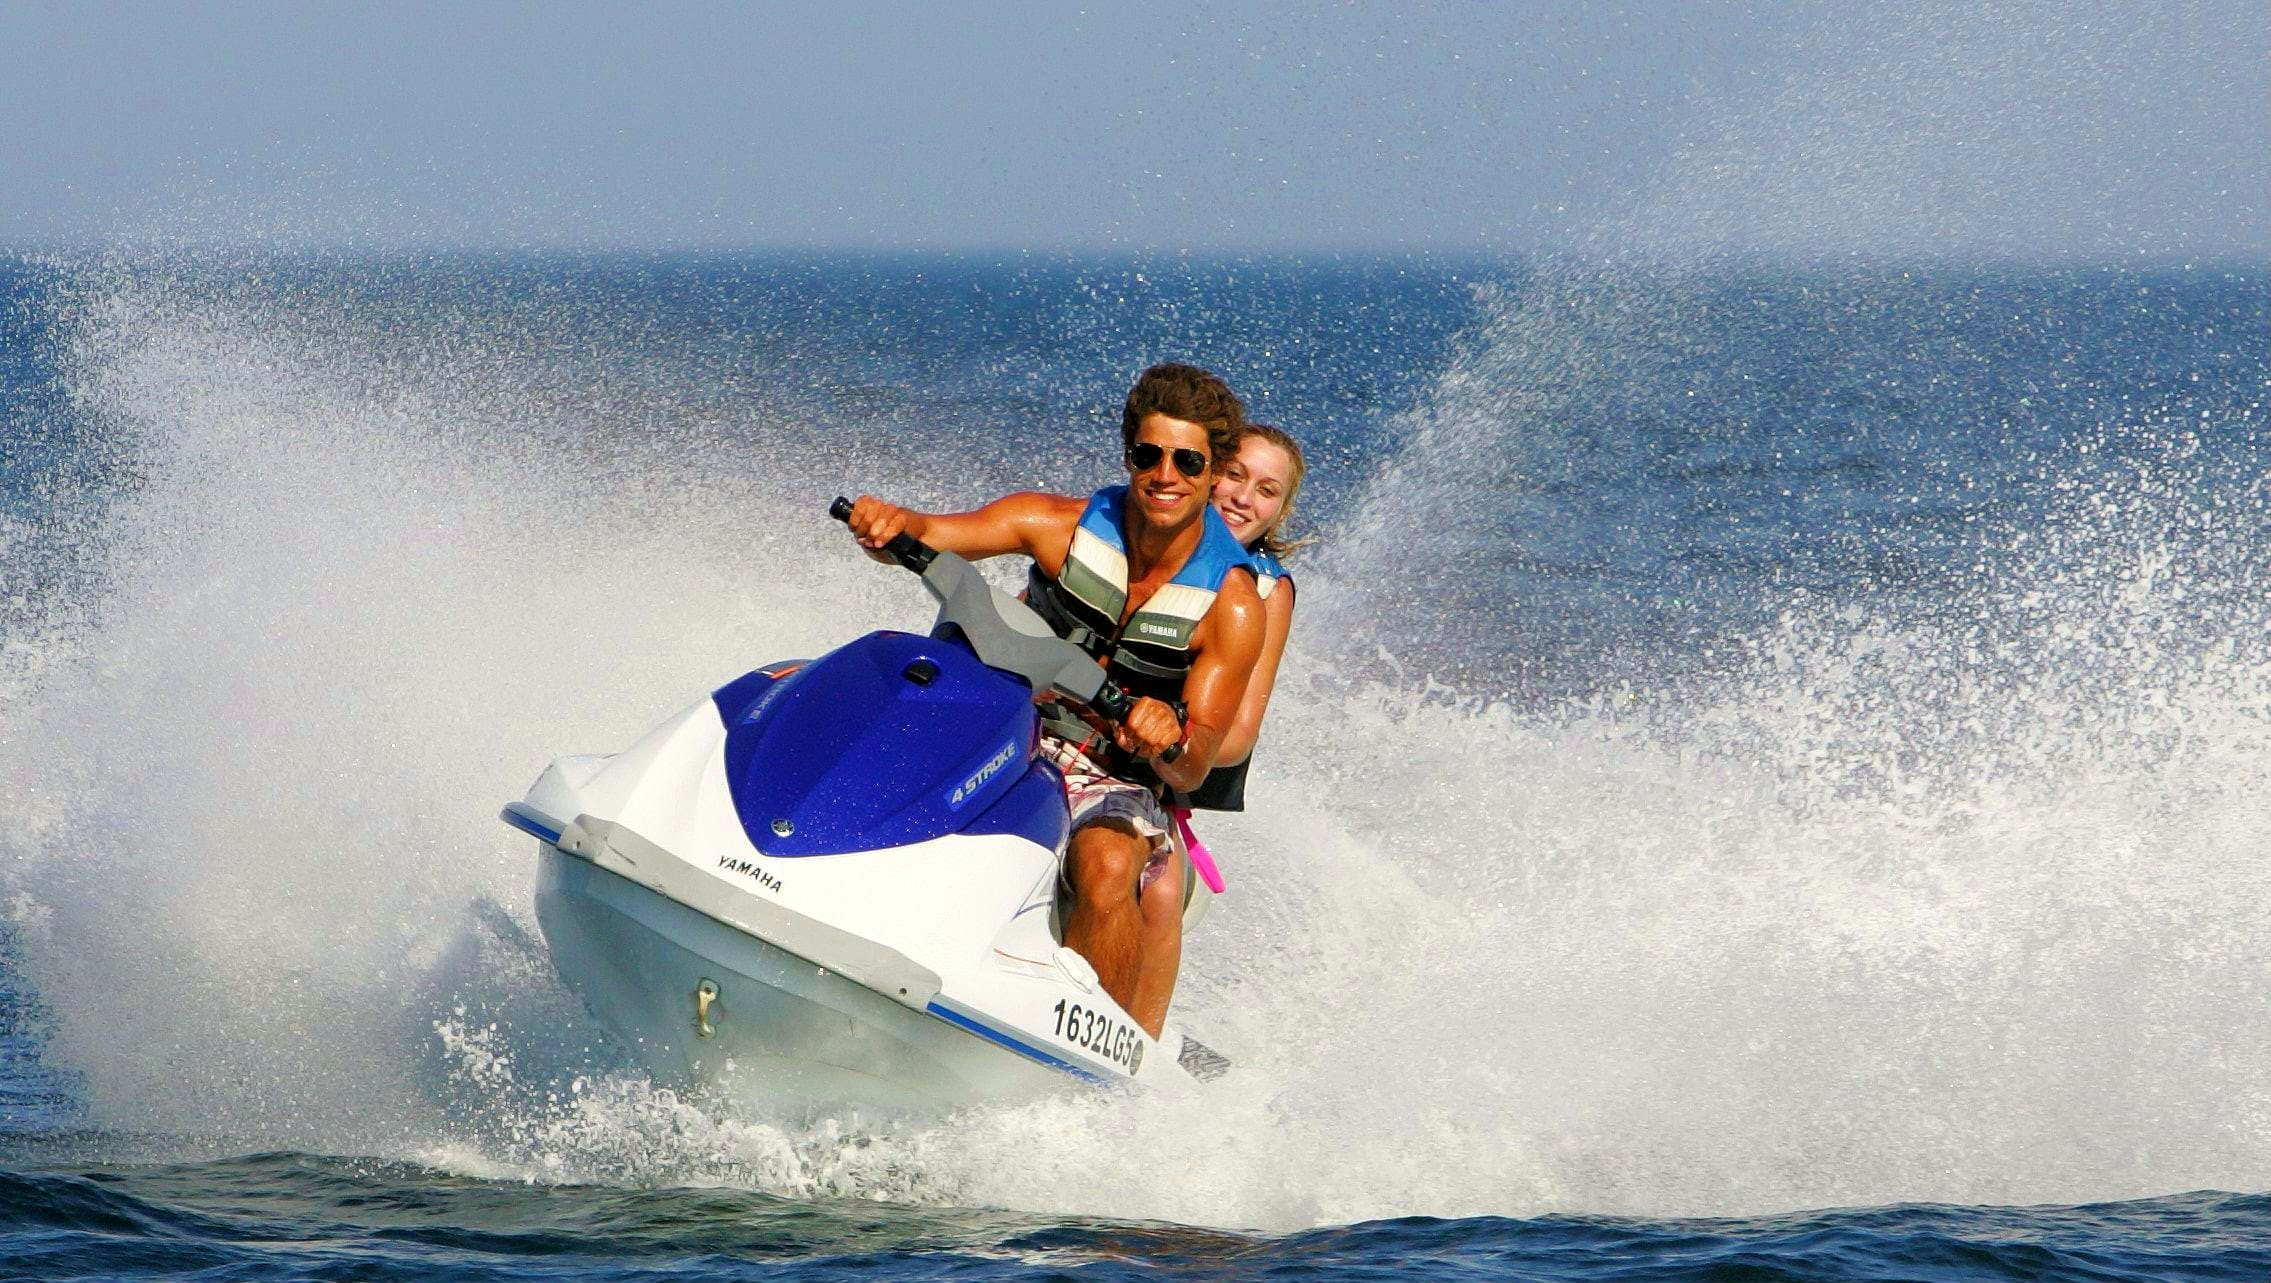 Two people enjoy driving a jet ski in the Algarve.